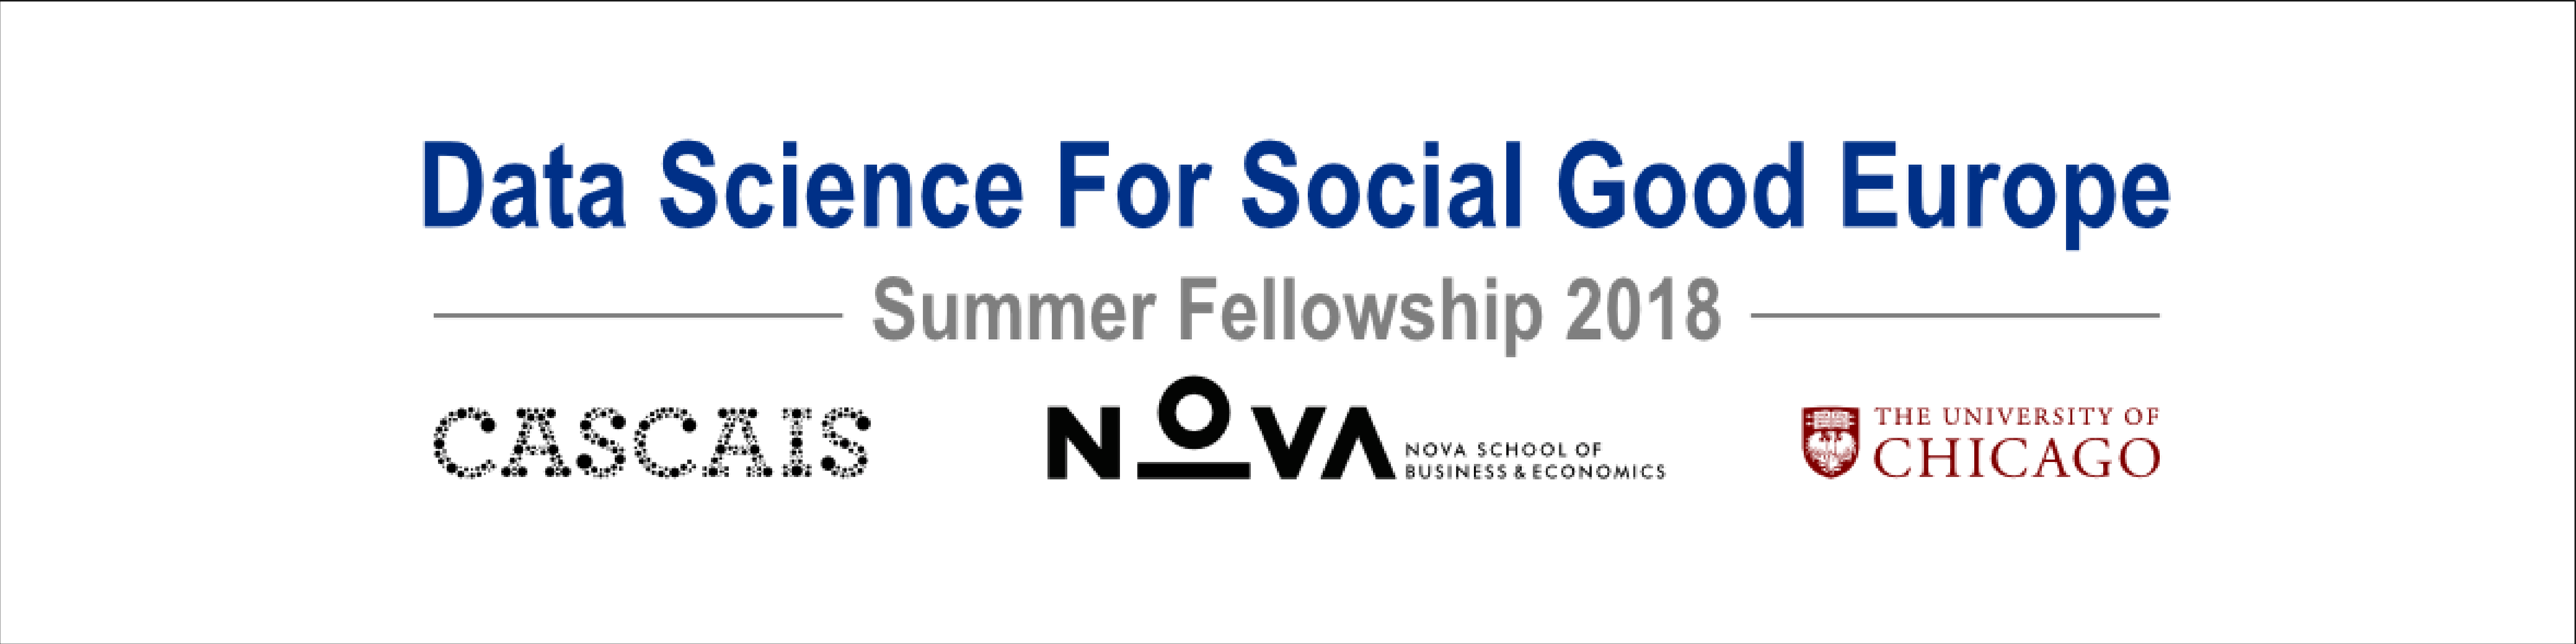 Final presentations of the 2018 Summer Fellowship Program of Data Science for Social Good Europe